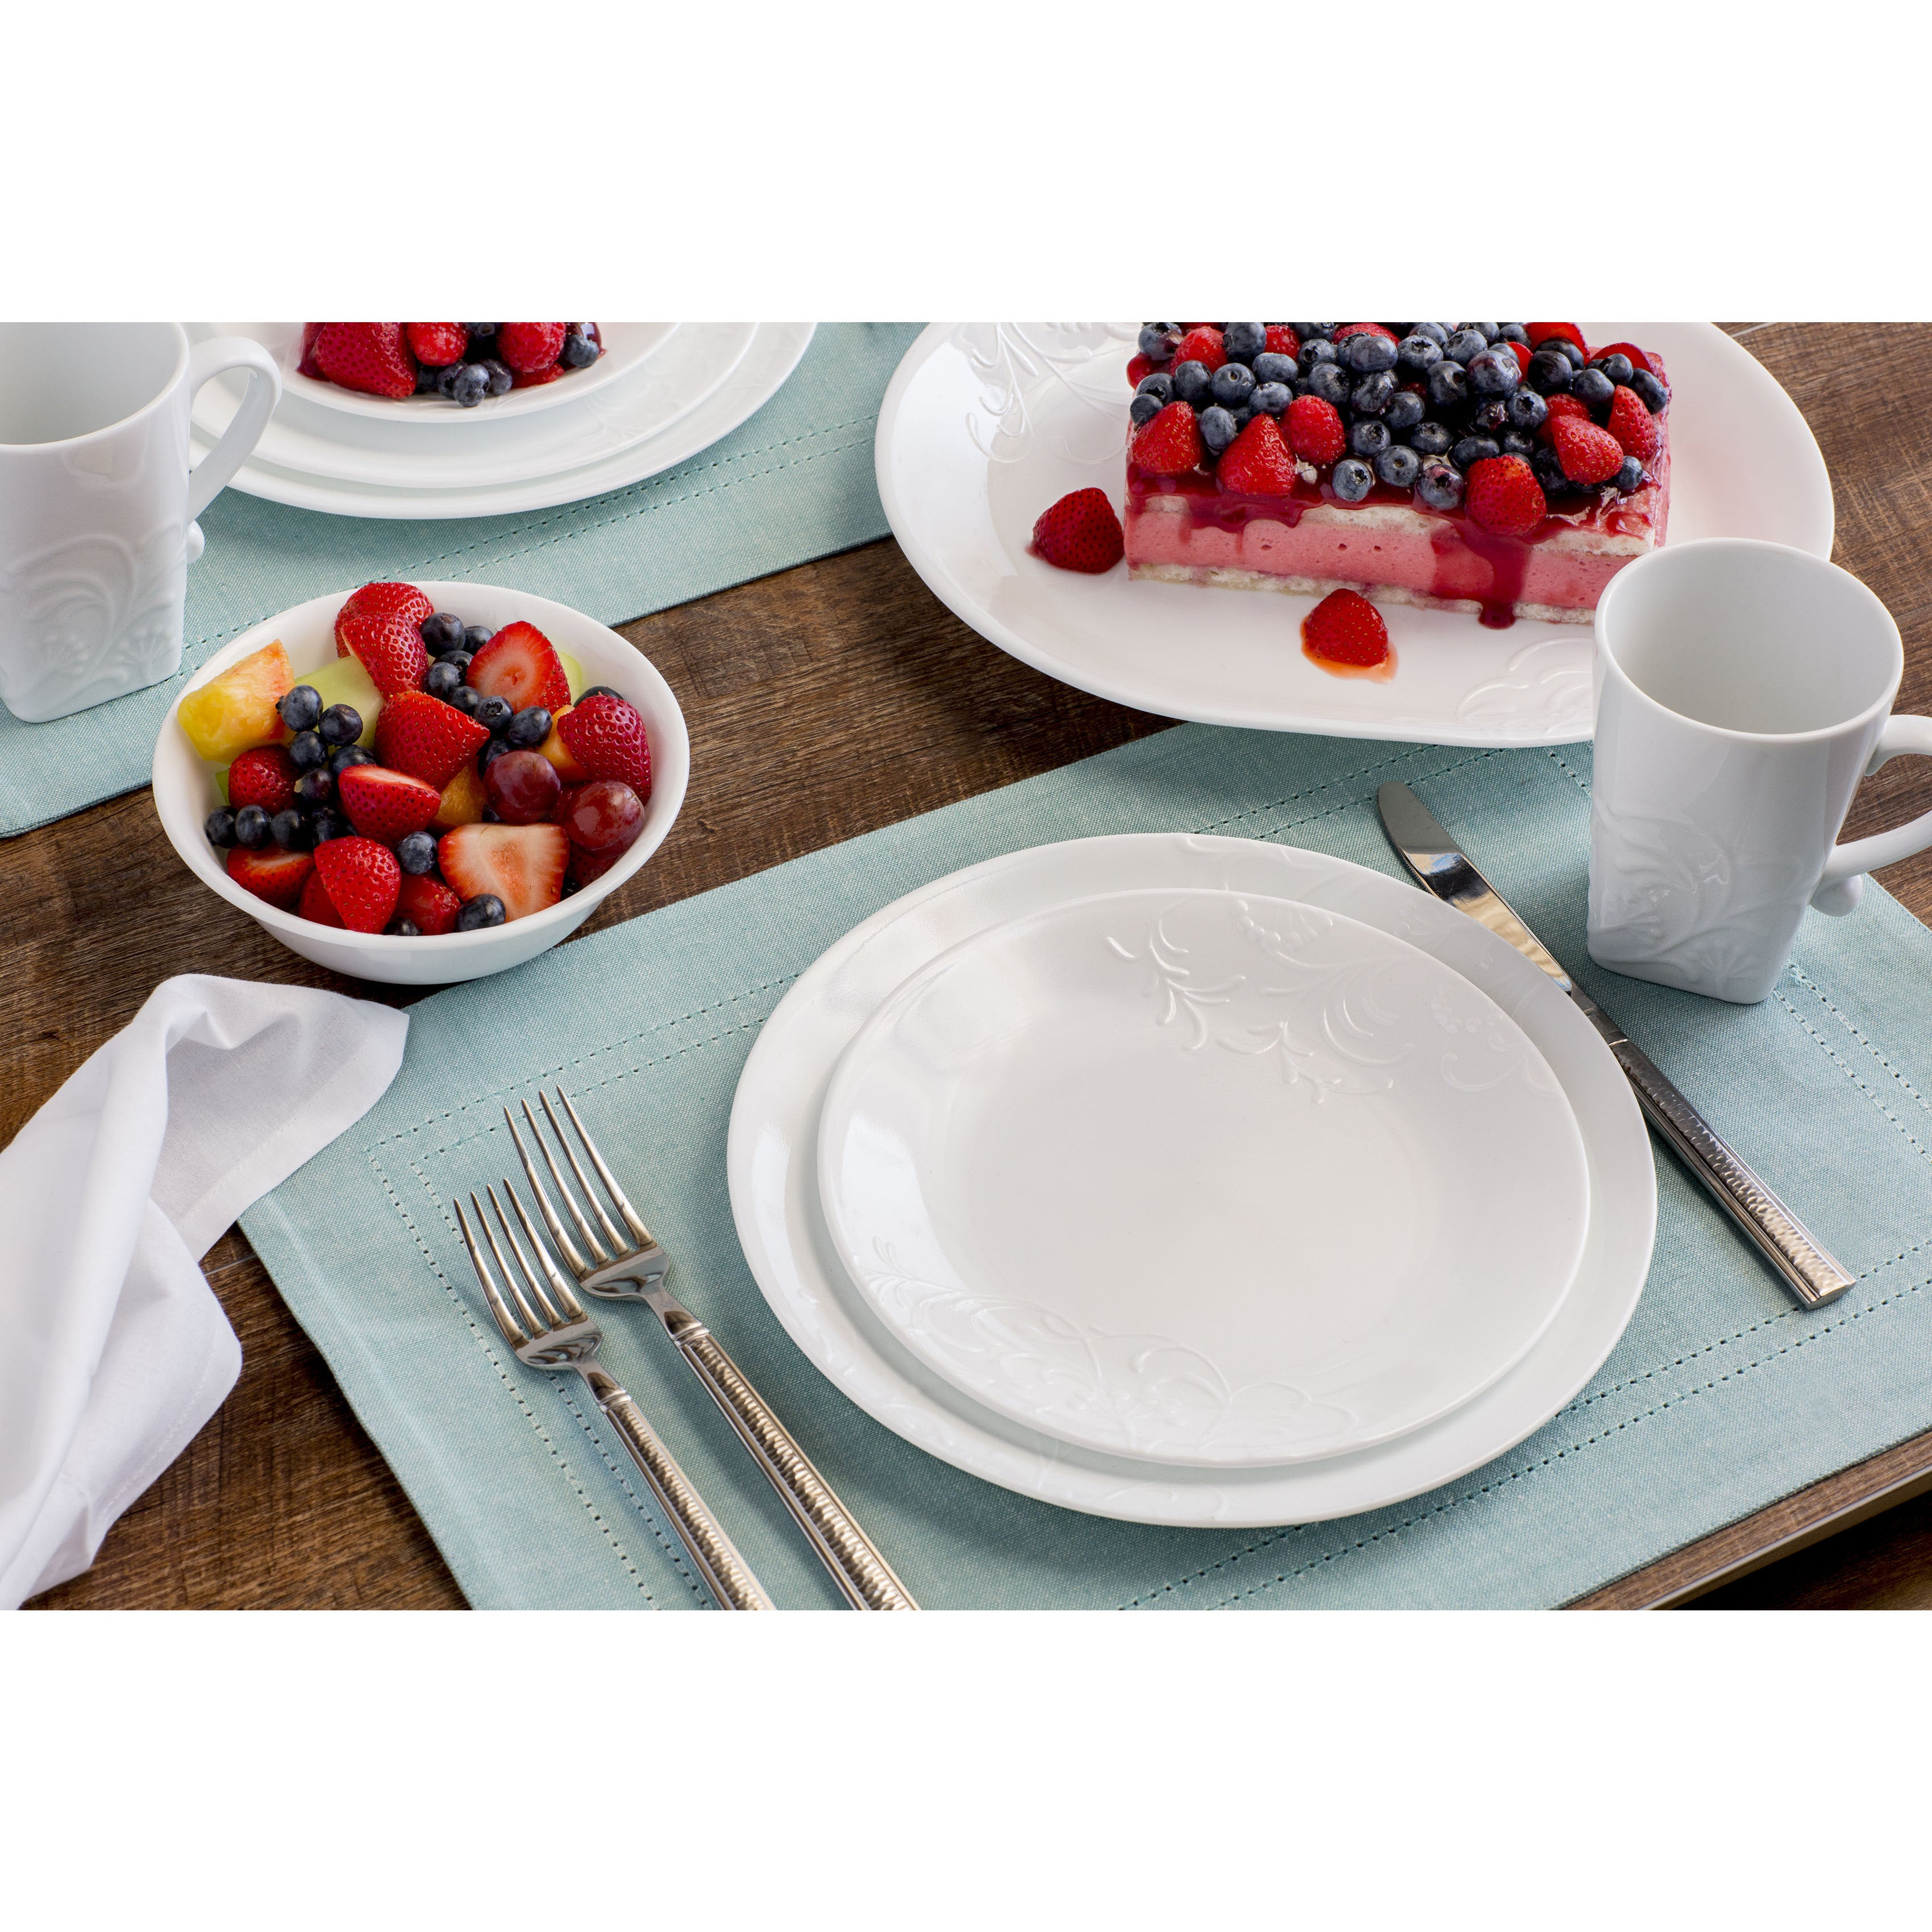 Shop Corelle Boutique Cherish Round 42-pc Dinnerware Set - On Sale - Free Shipping Today - Overstock.com - 15951783  sc 1 st  Overstock & Shop Corelle Boutique Cherish Round 42-pc Dinnerware Set - On Sale ...